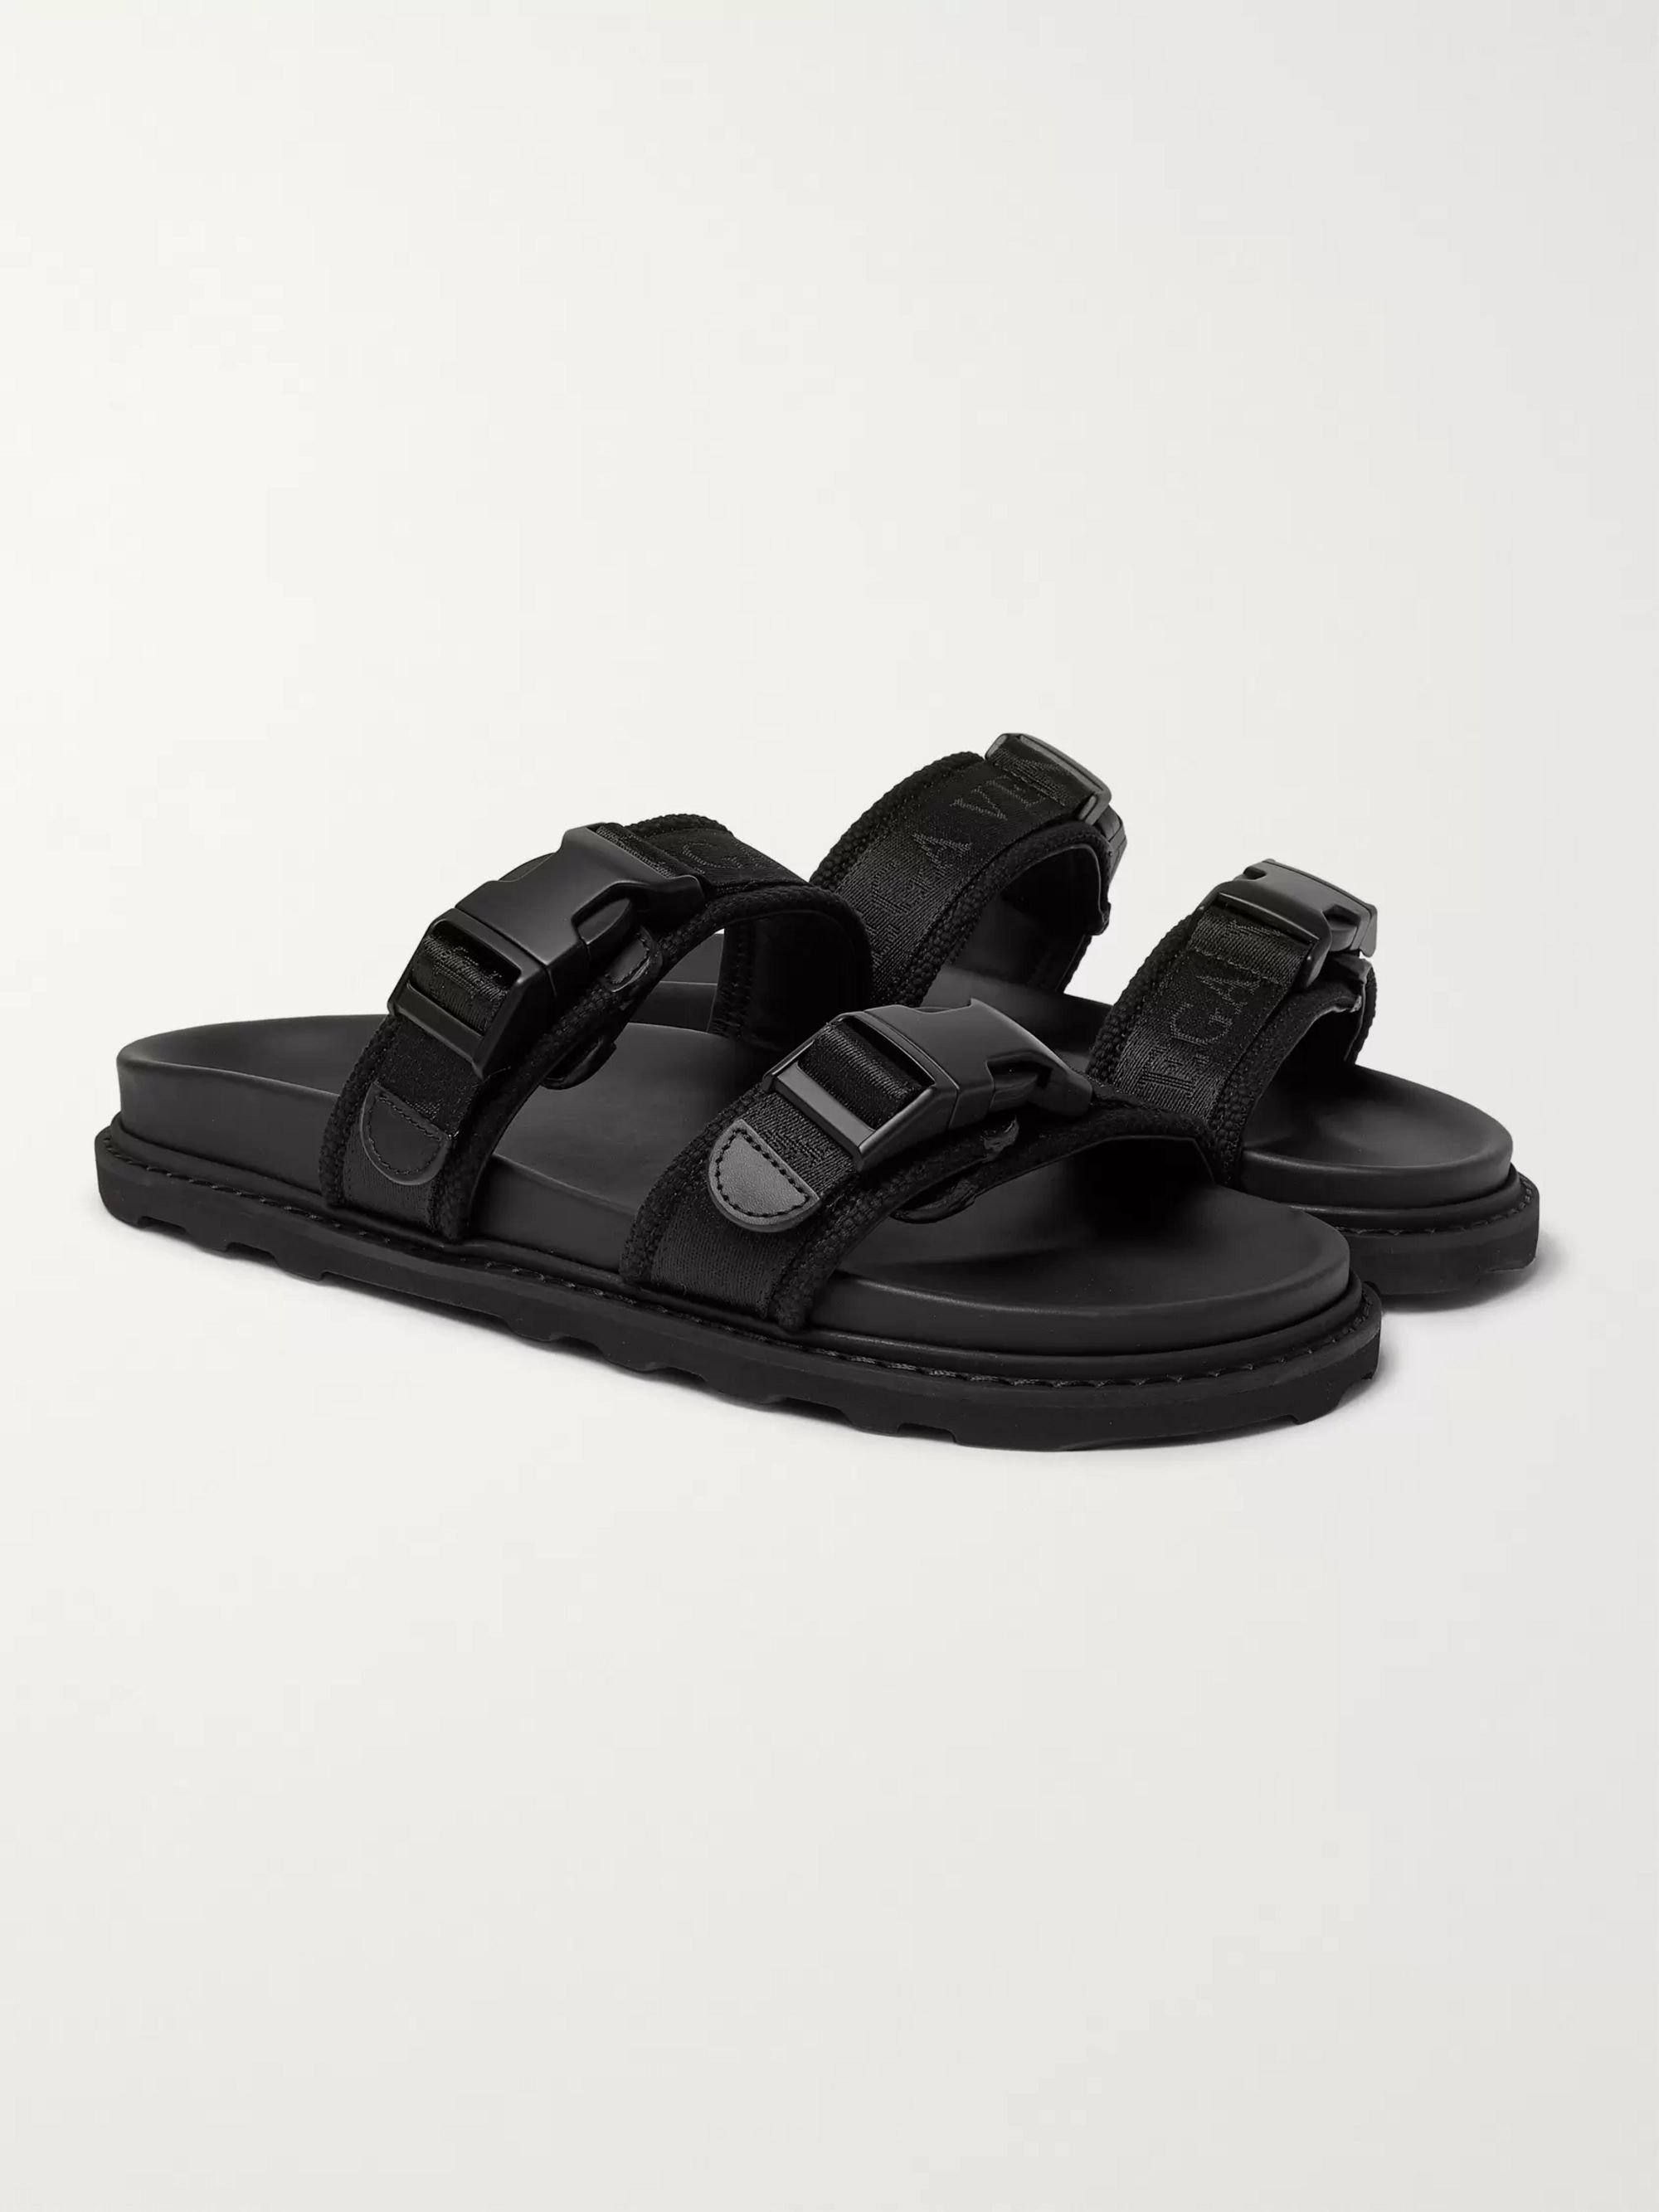 Bottega Veneta Leather and Webbing Sandals